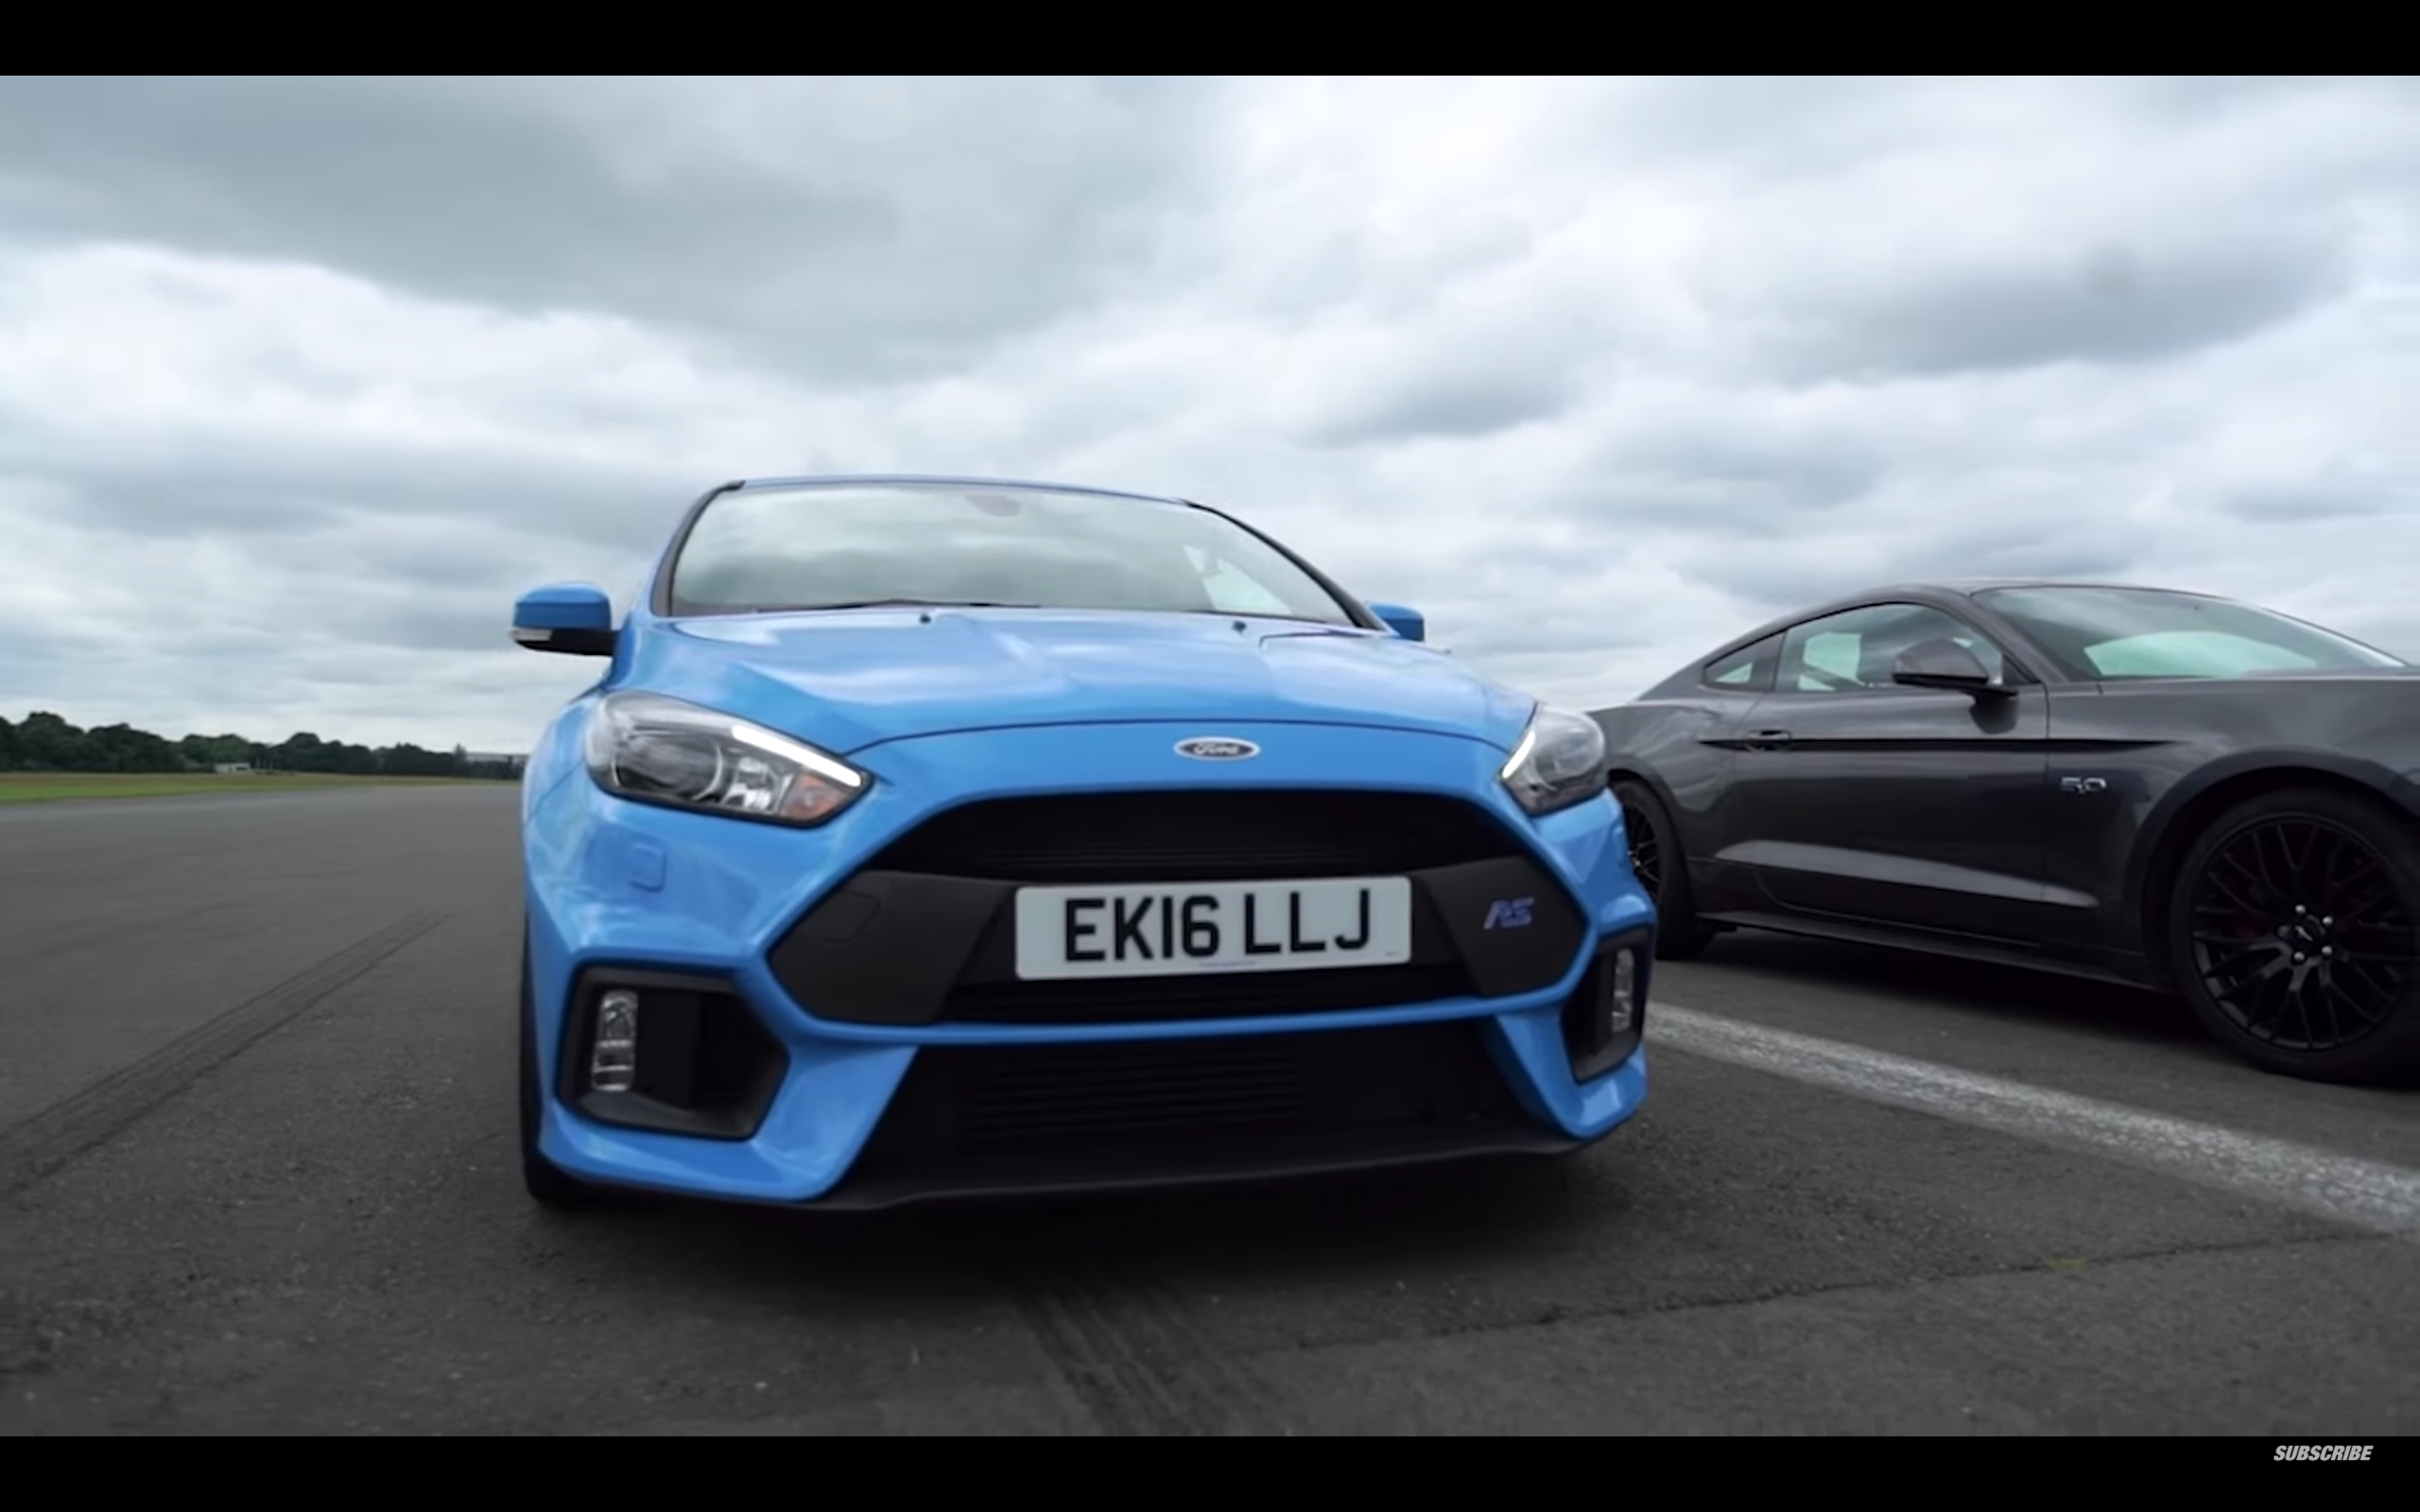 Blue Oval Battle As Focus RS And Ford Mustang Go Head-To-Head